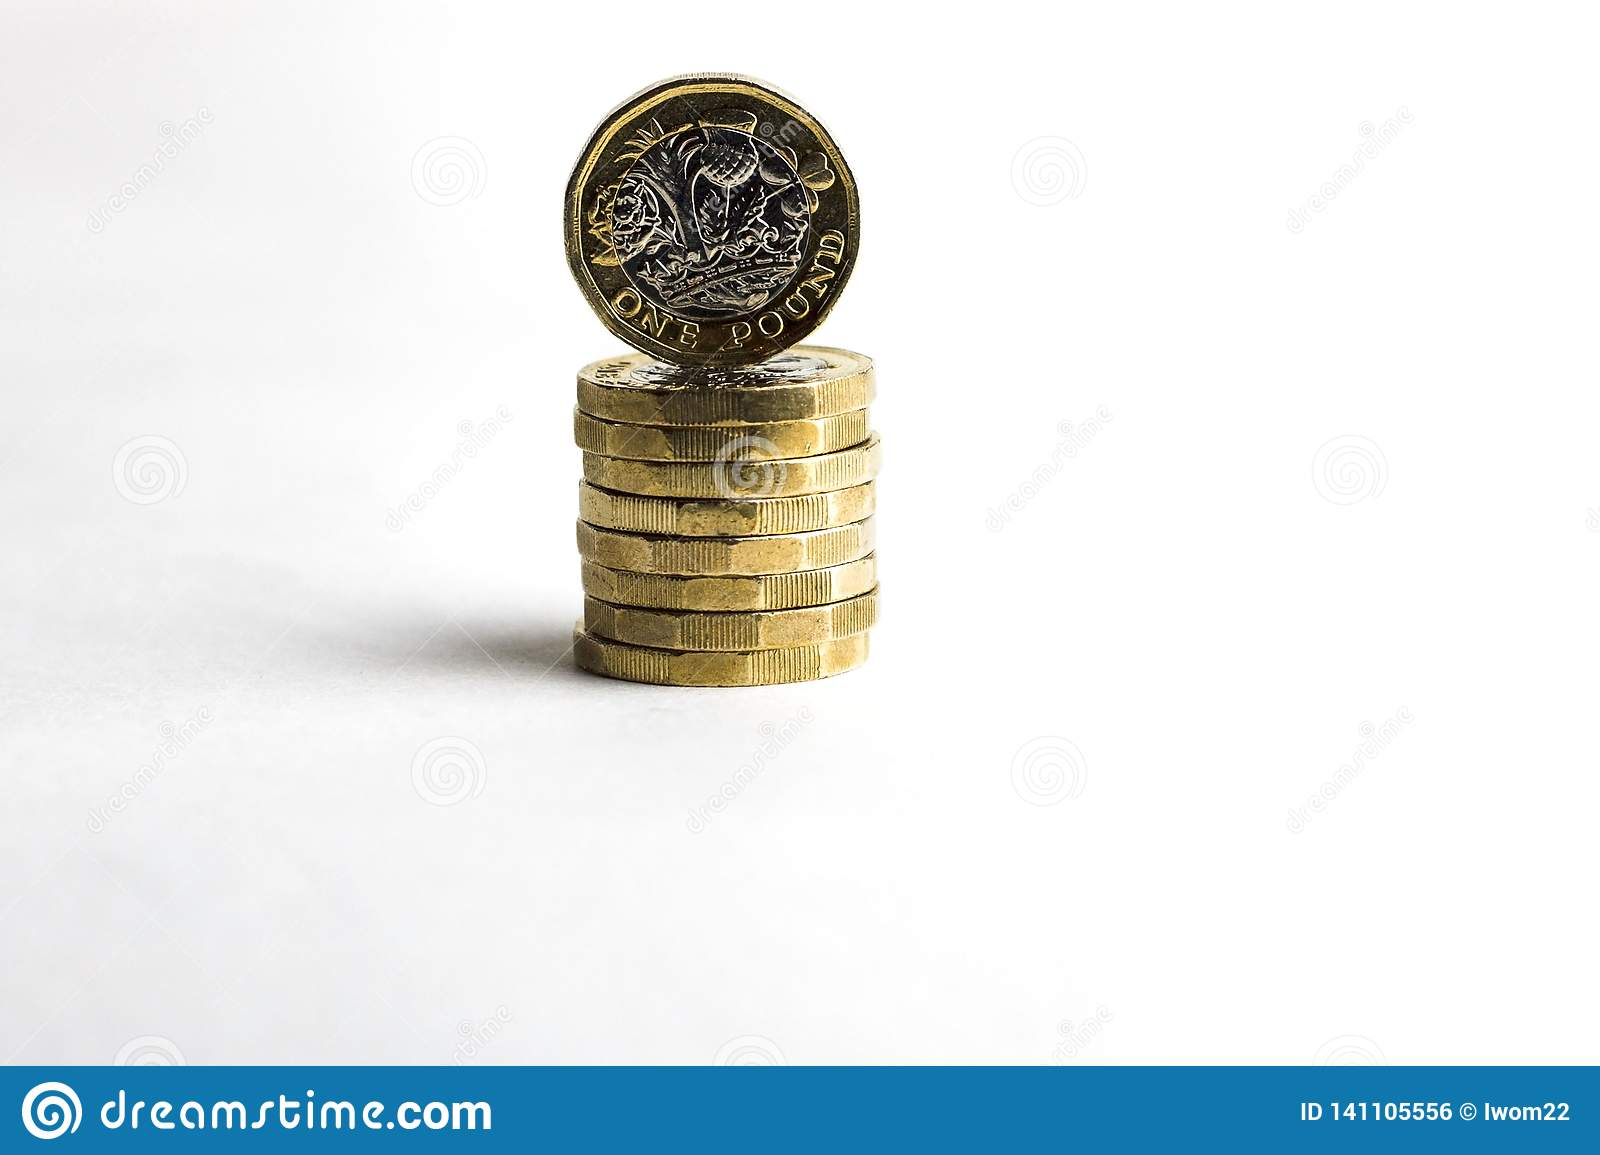 Pile of one pound coins.